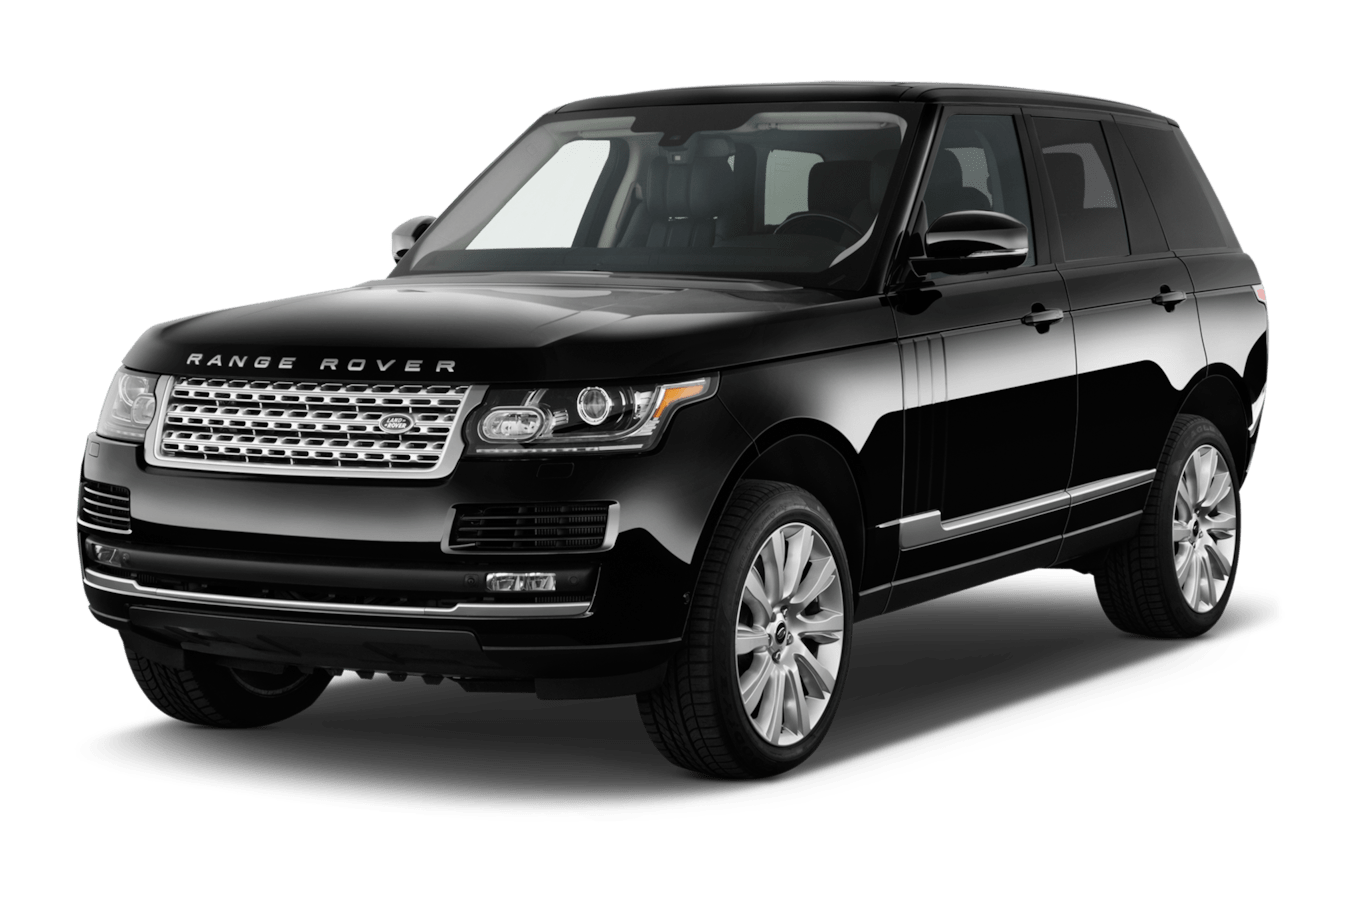 Landrover Range 2016 Land Rover Range Rover Reviews And Rating Motor Trend Canada